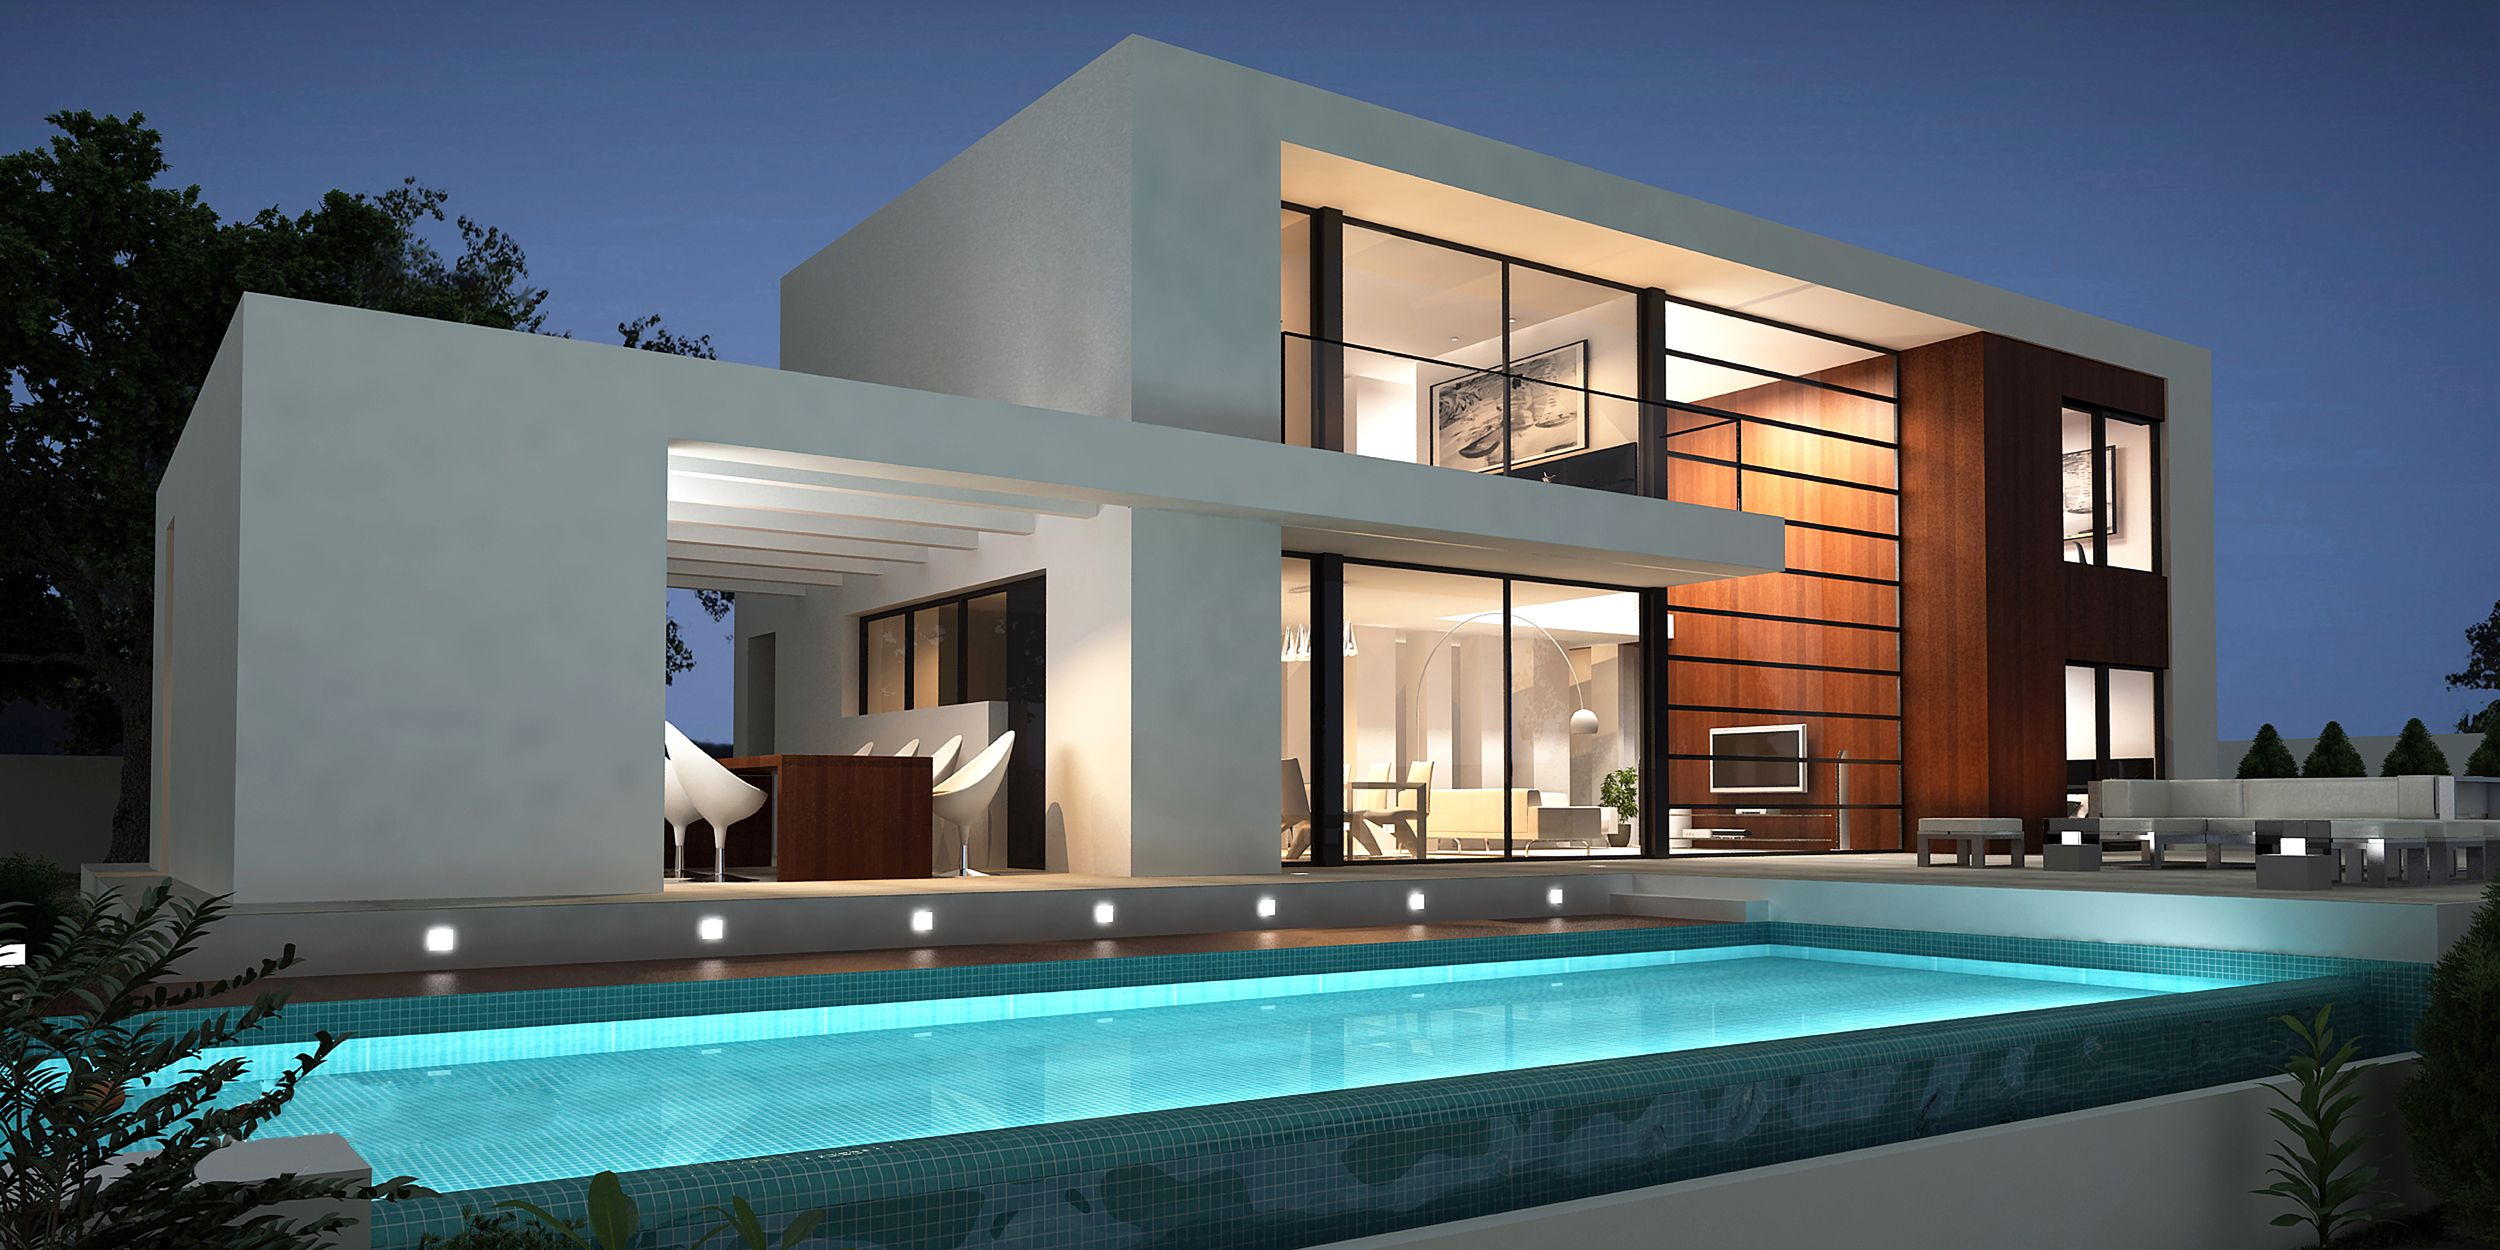 Villa modern google suche modern architecture for Villa architecture design plans